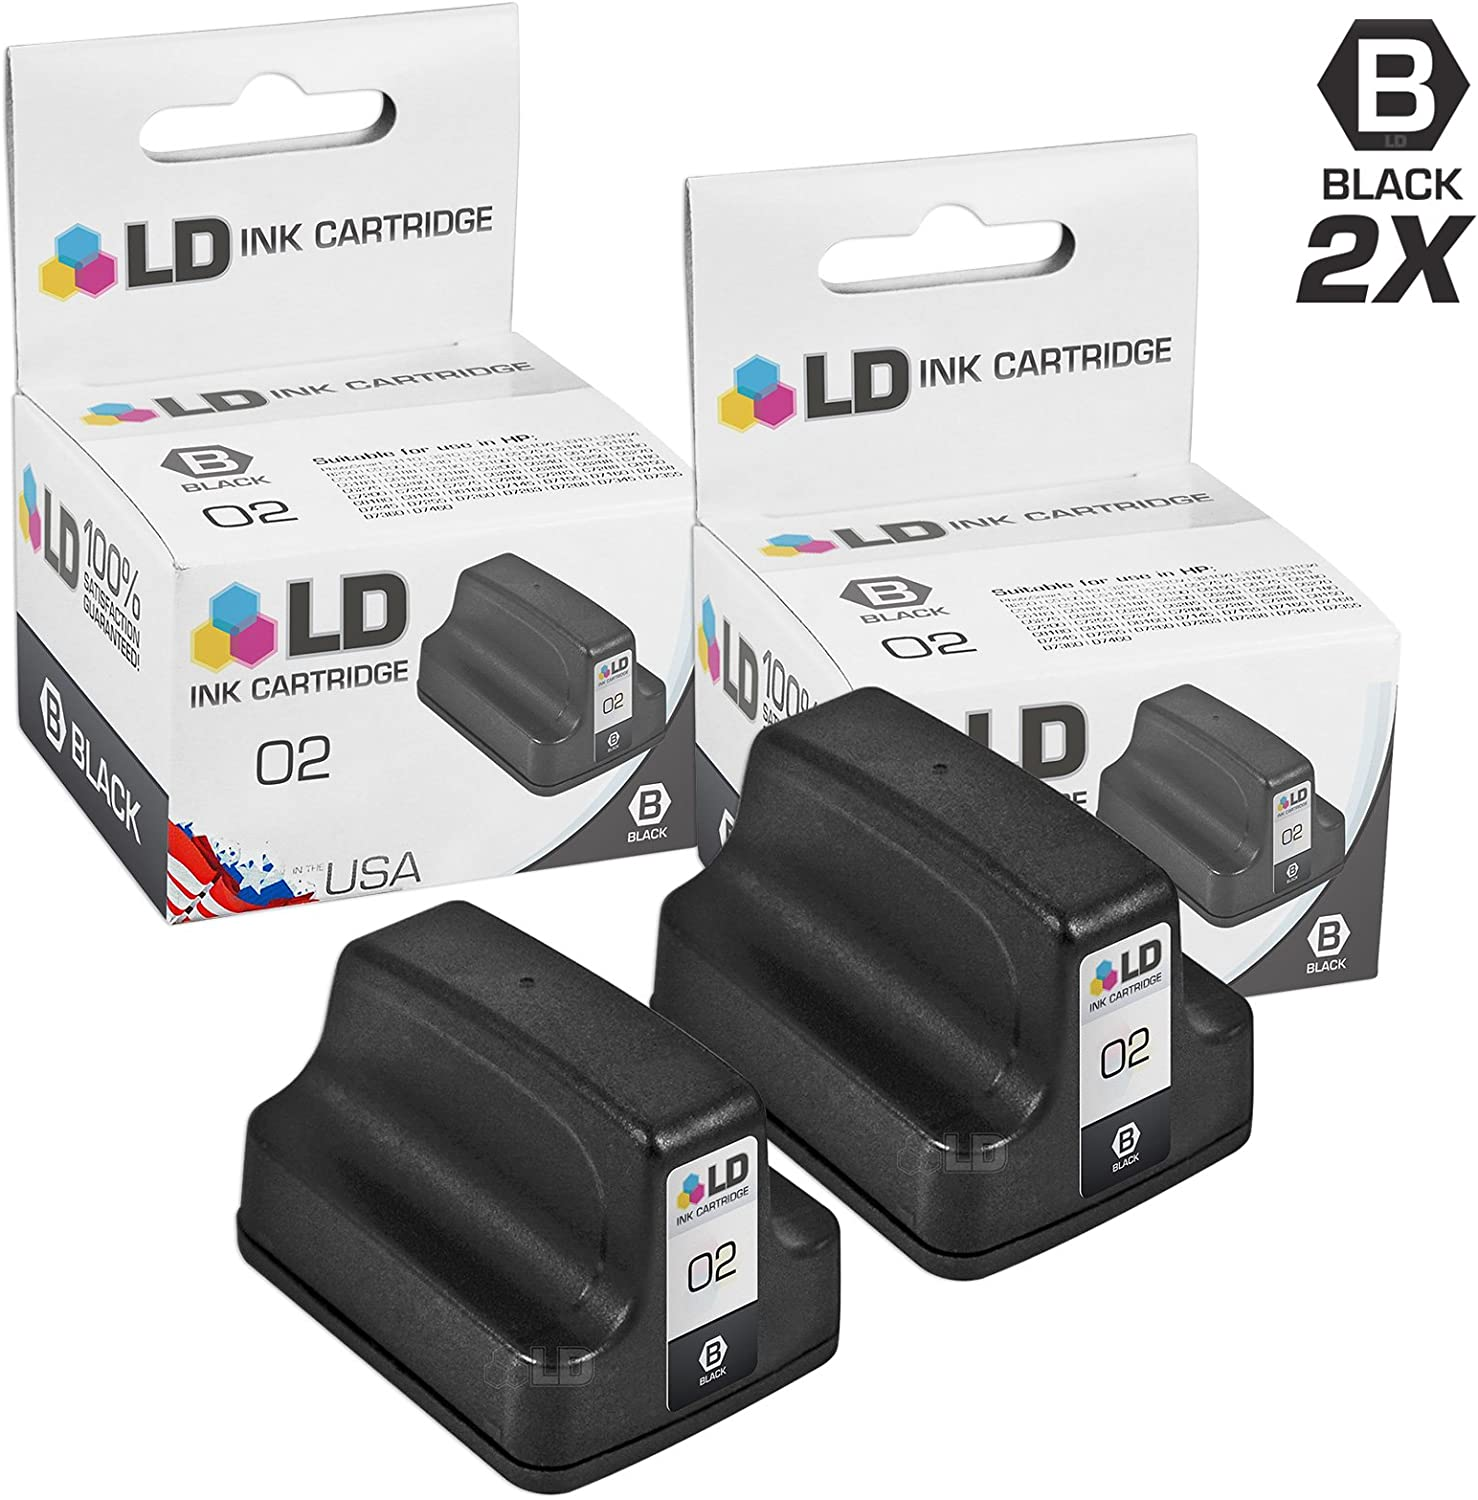 LD Remanufactured Ink Cartridge Replacement for HP 02 C8721WN (Black, 2-Pack)